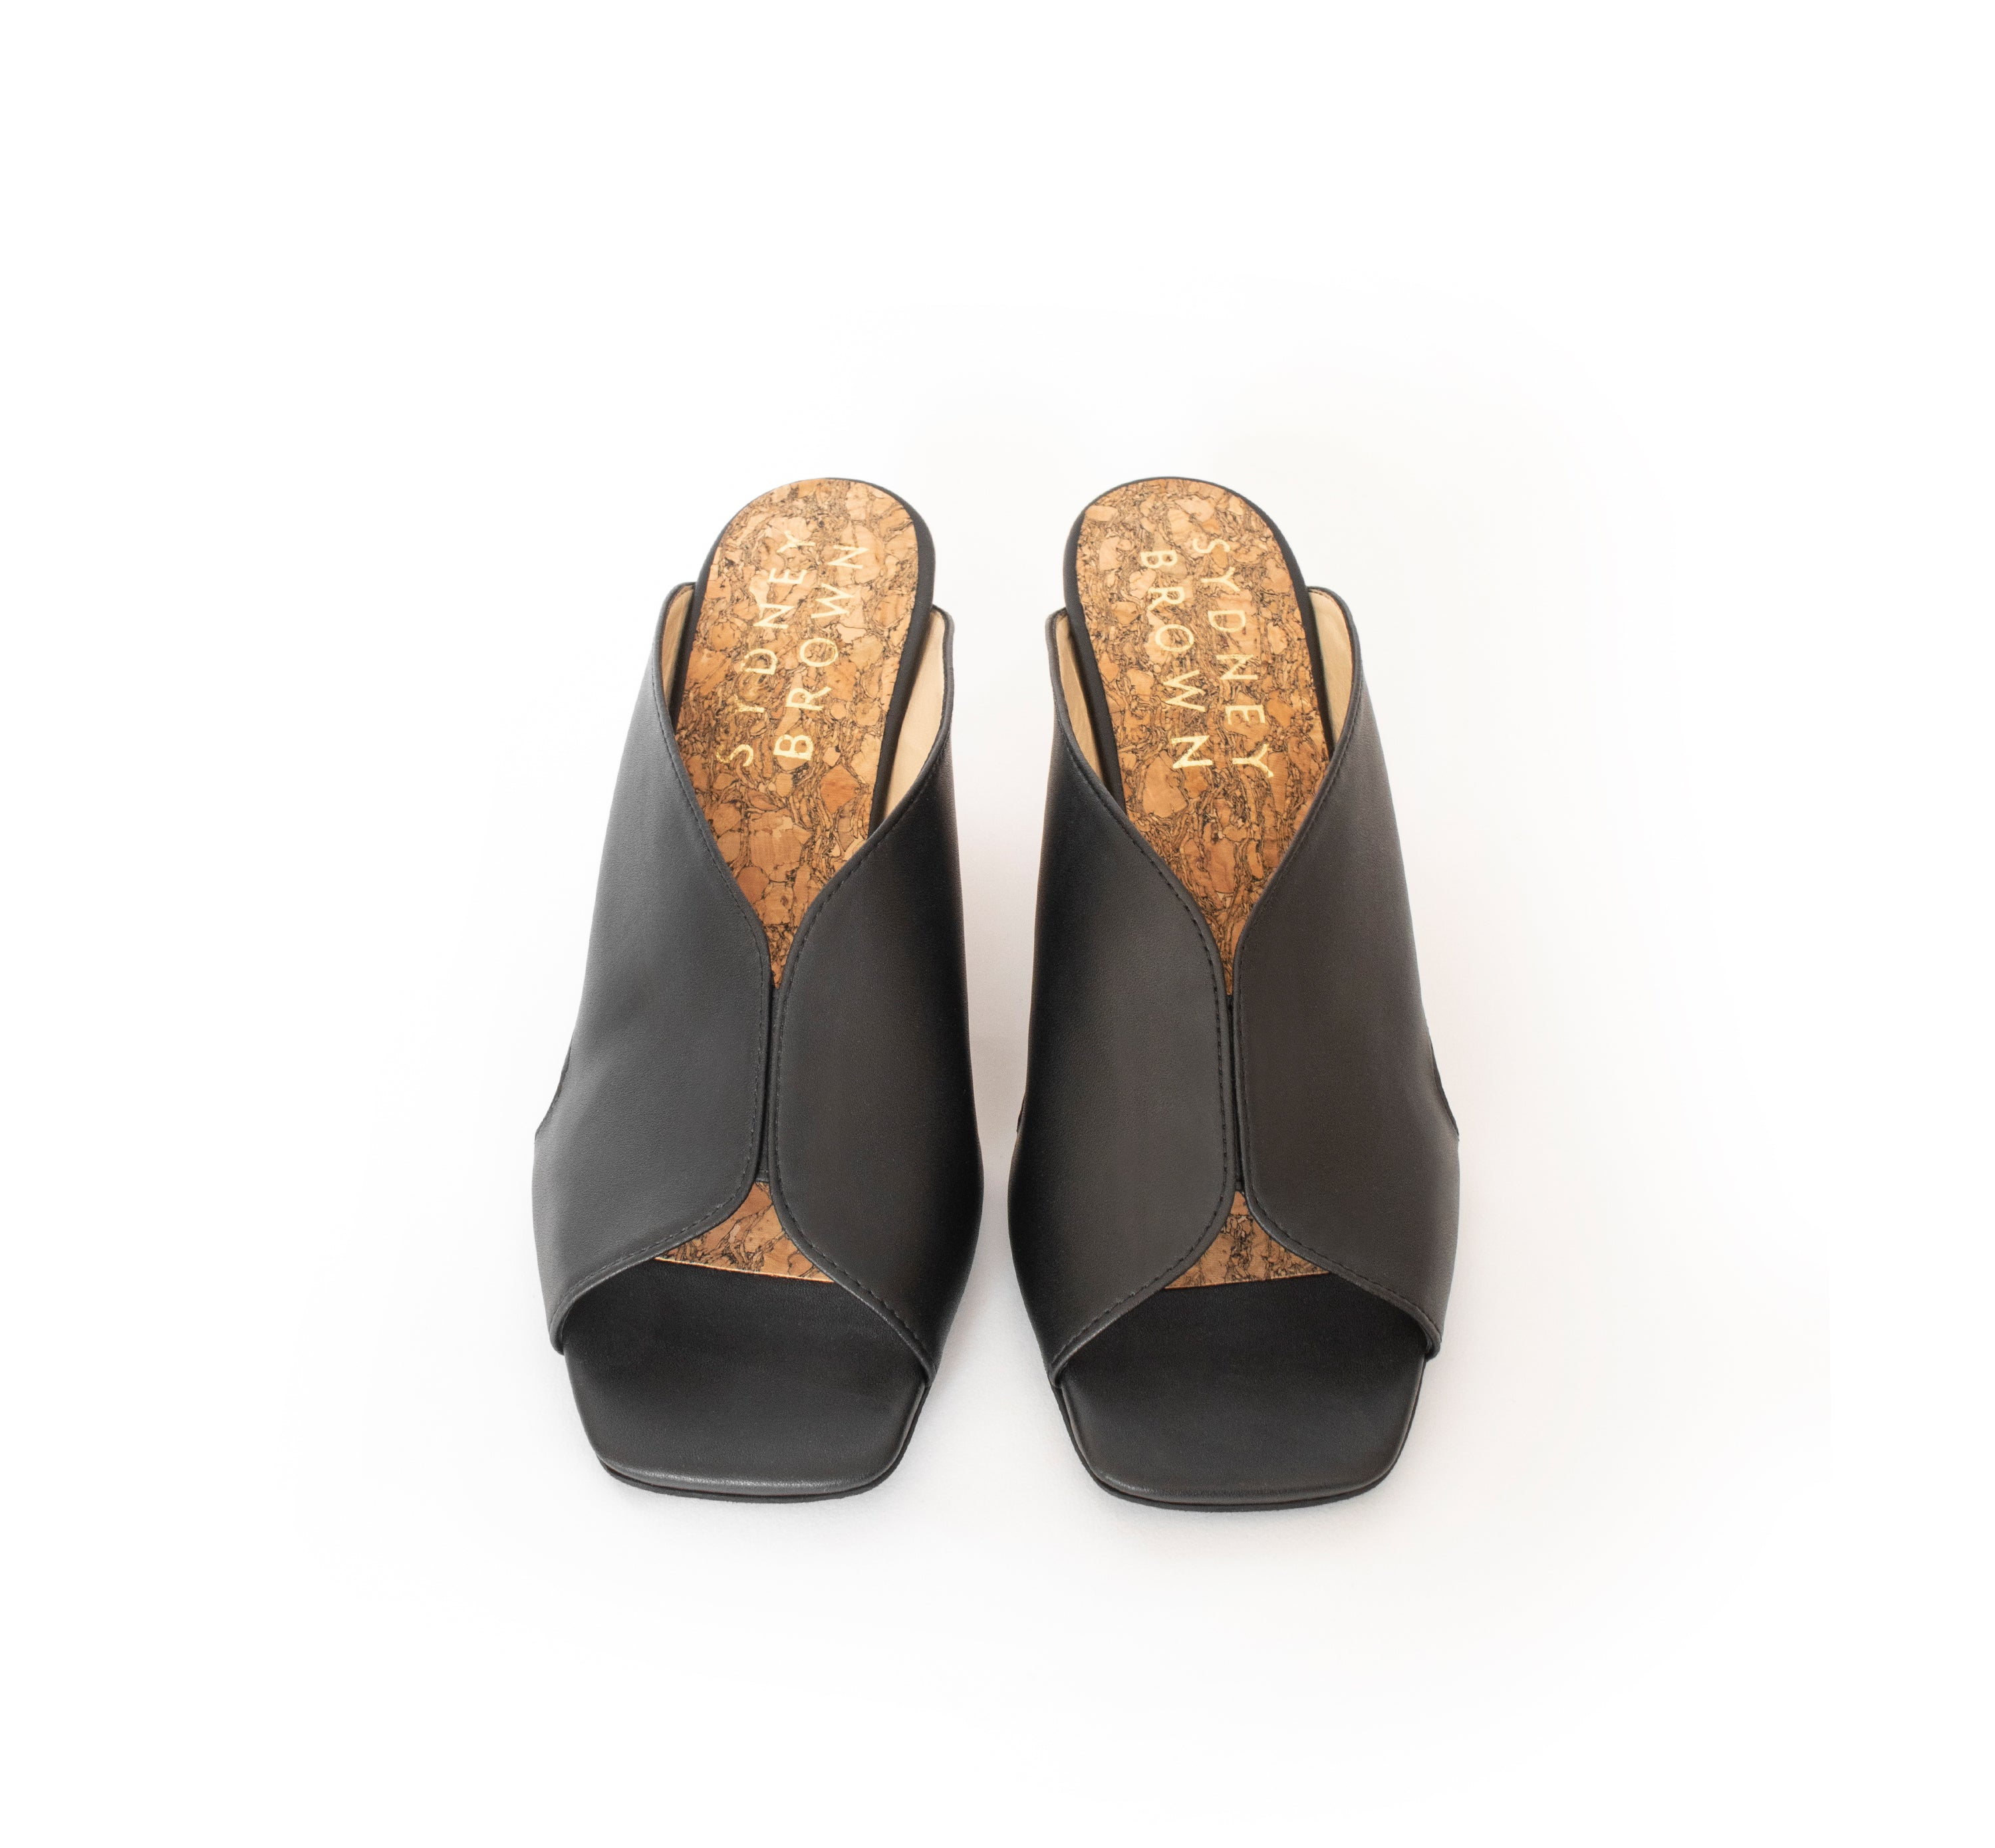 High Heel Mules in certified black faux-nappa and breathable lining, natural wood heel. Luxury vegan heels. Sydney Brown Spring Summer 2019. Sustainable, eco-friendly fashion